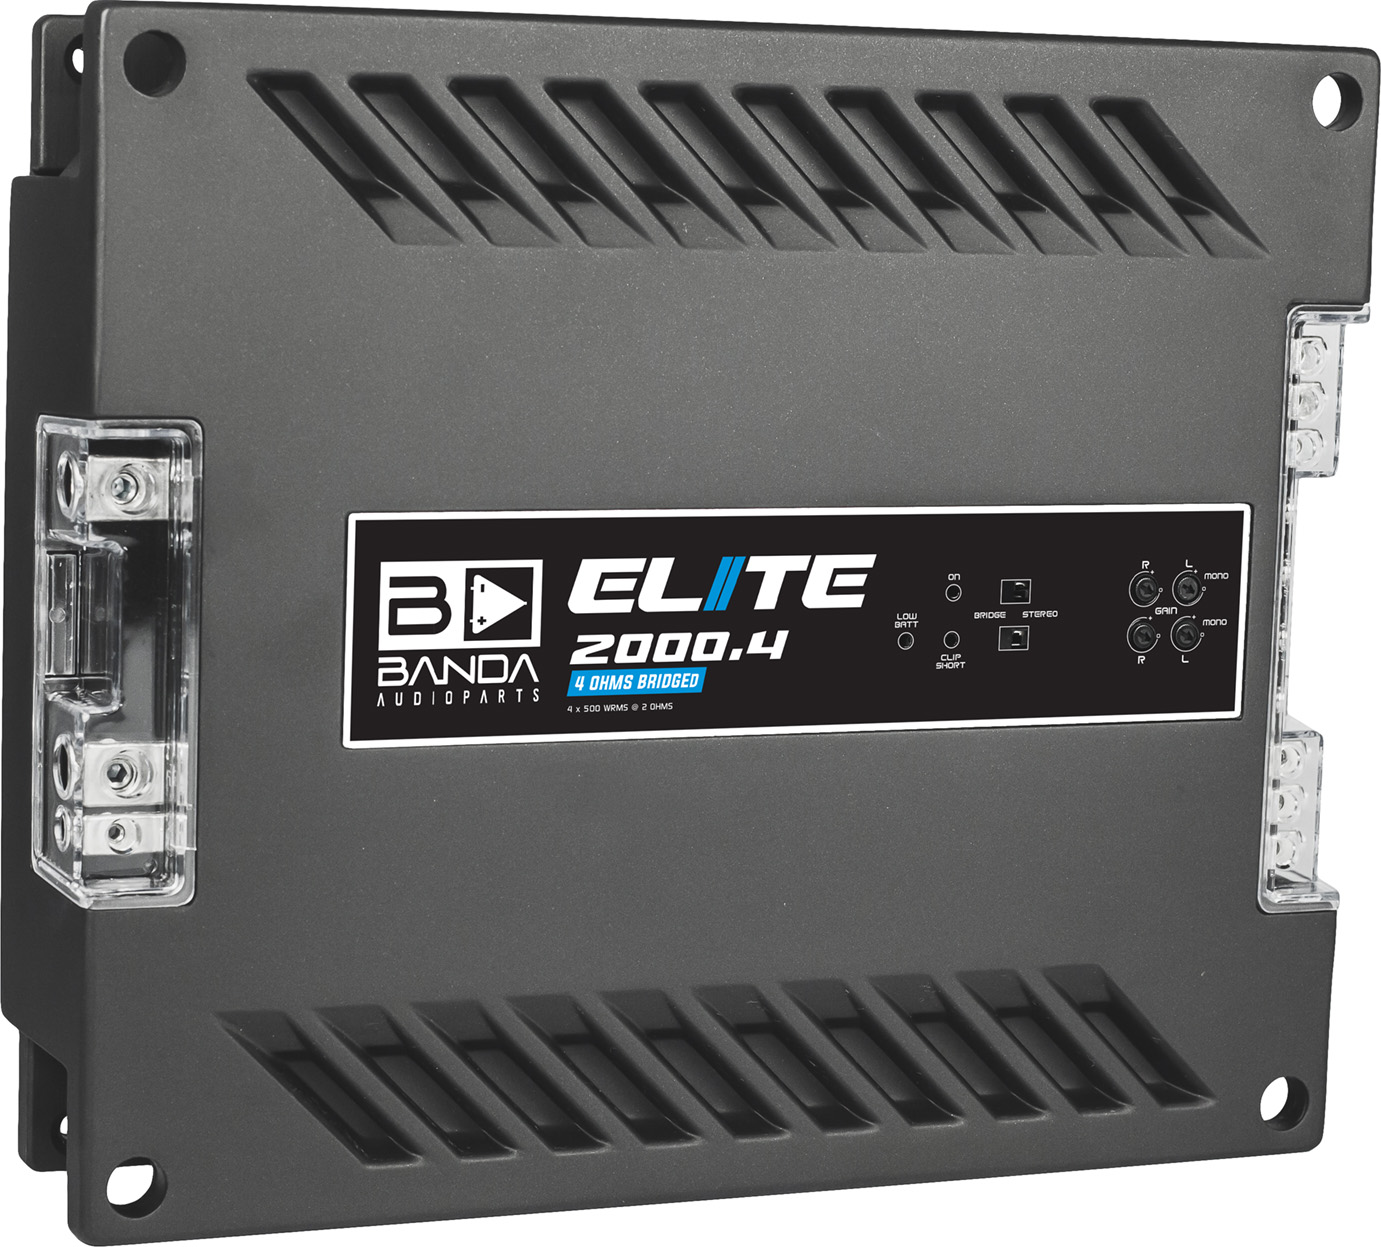 elite-2000.4-diagonal-19 ELITE